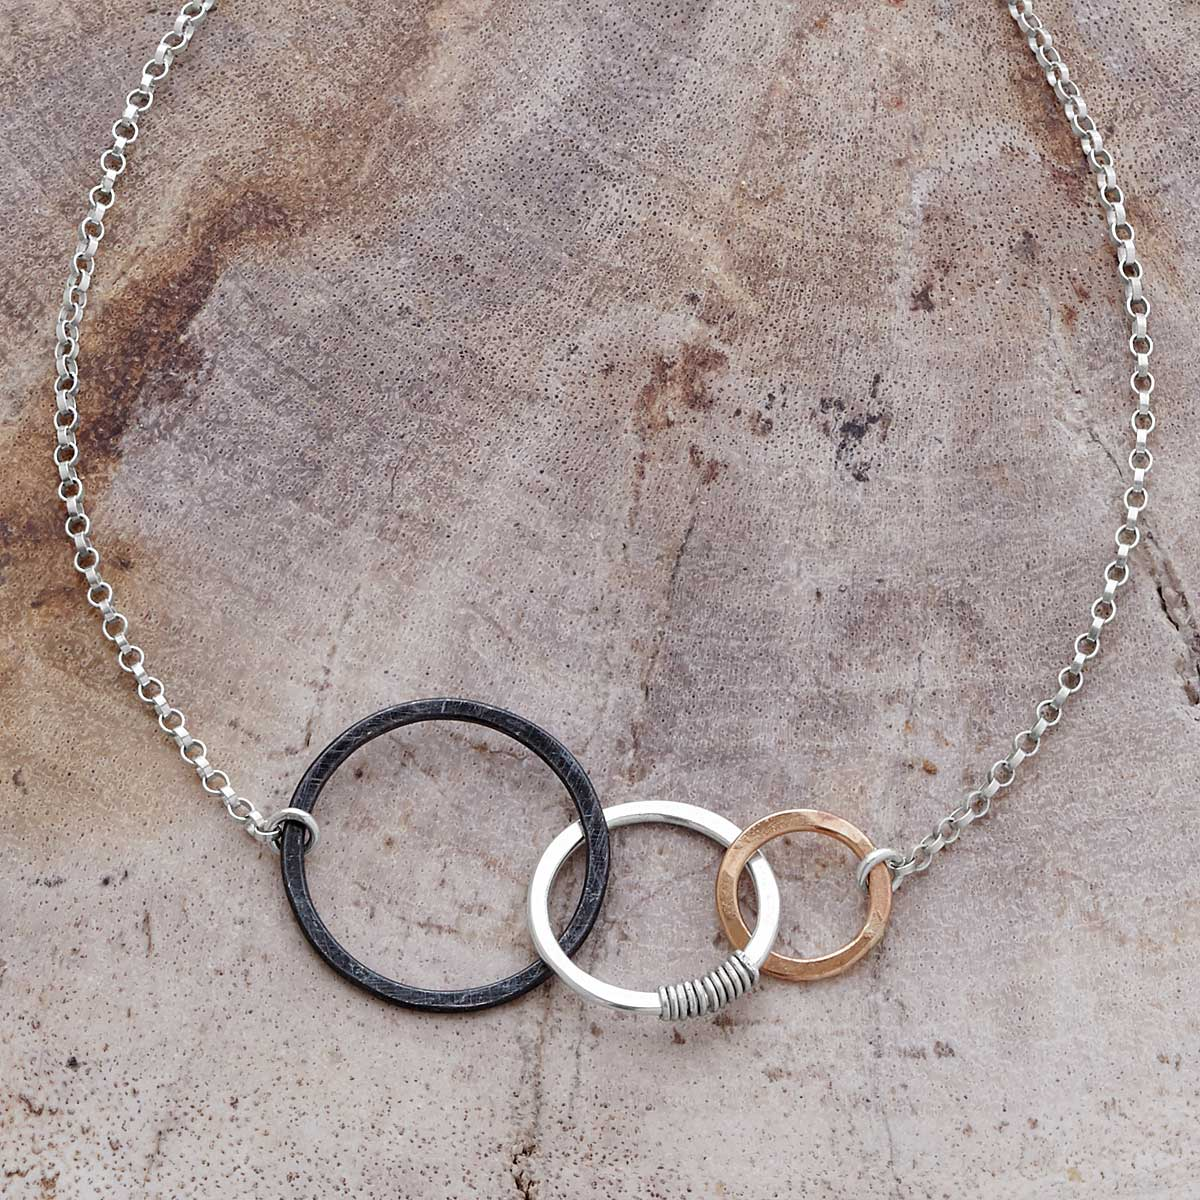 Past Present and Future Necklace | UncommonGoods